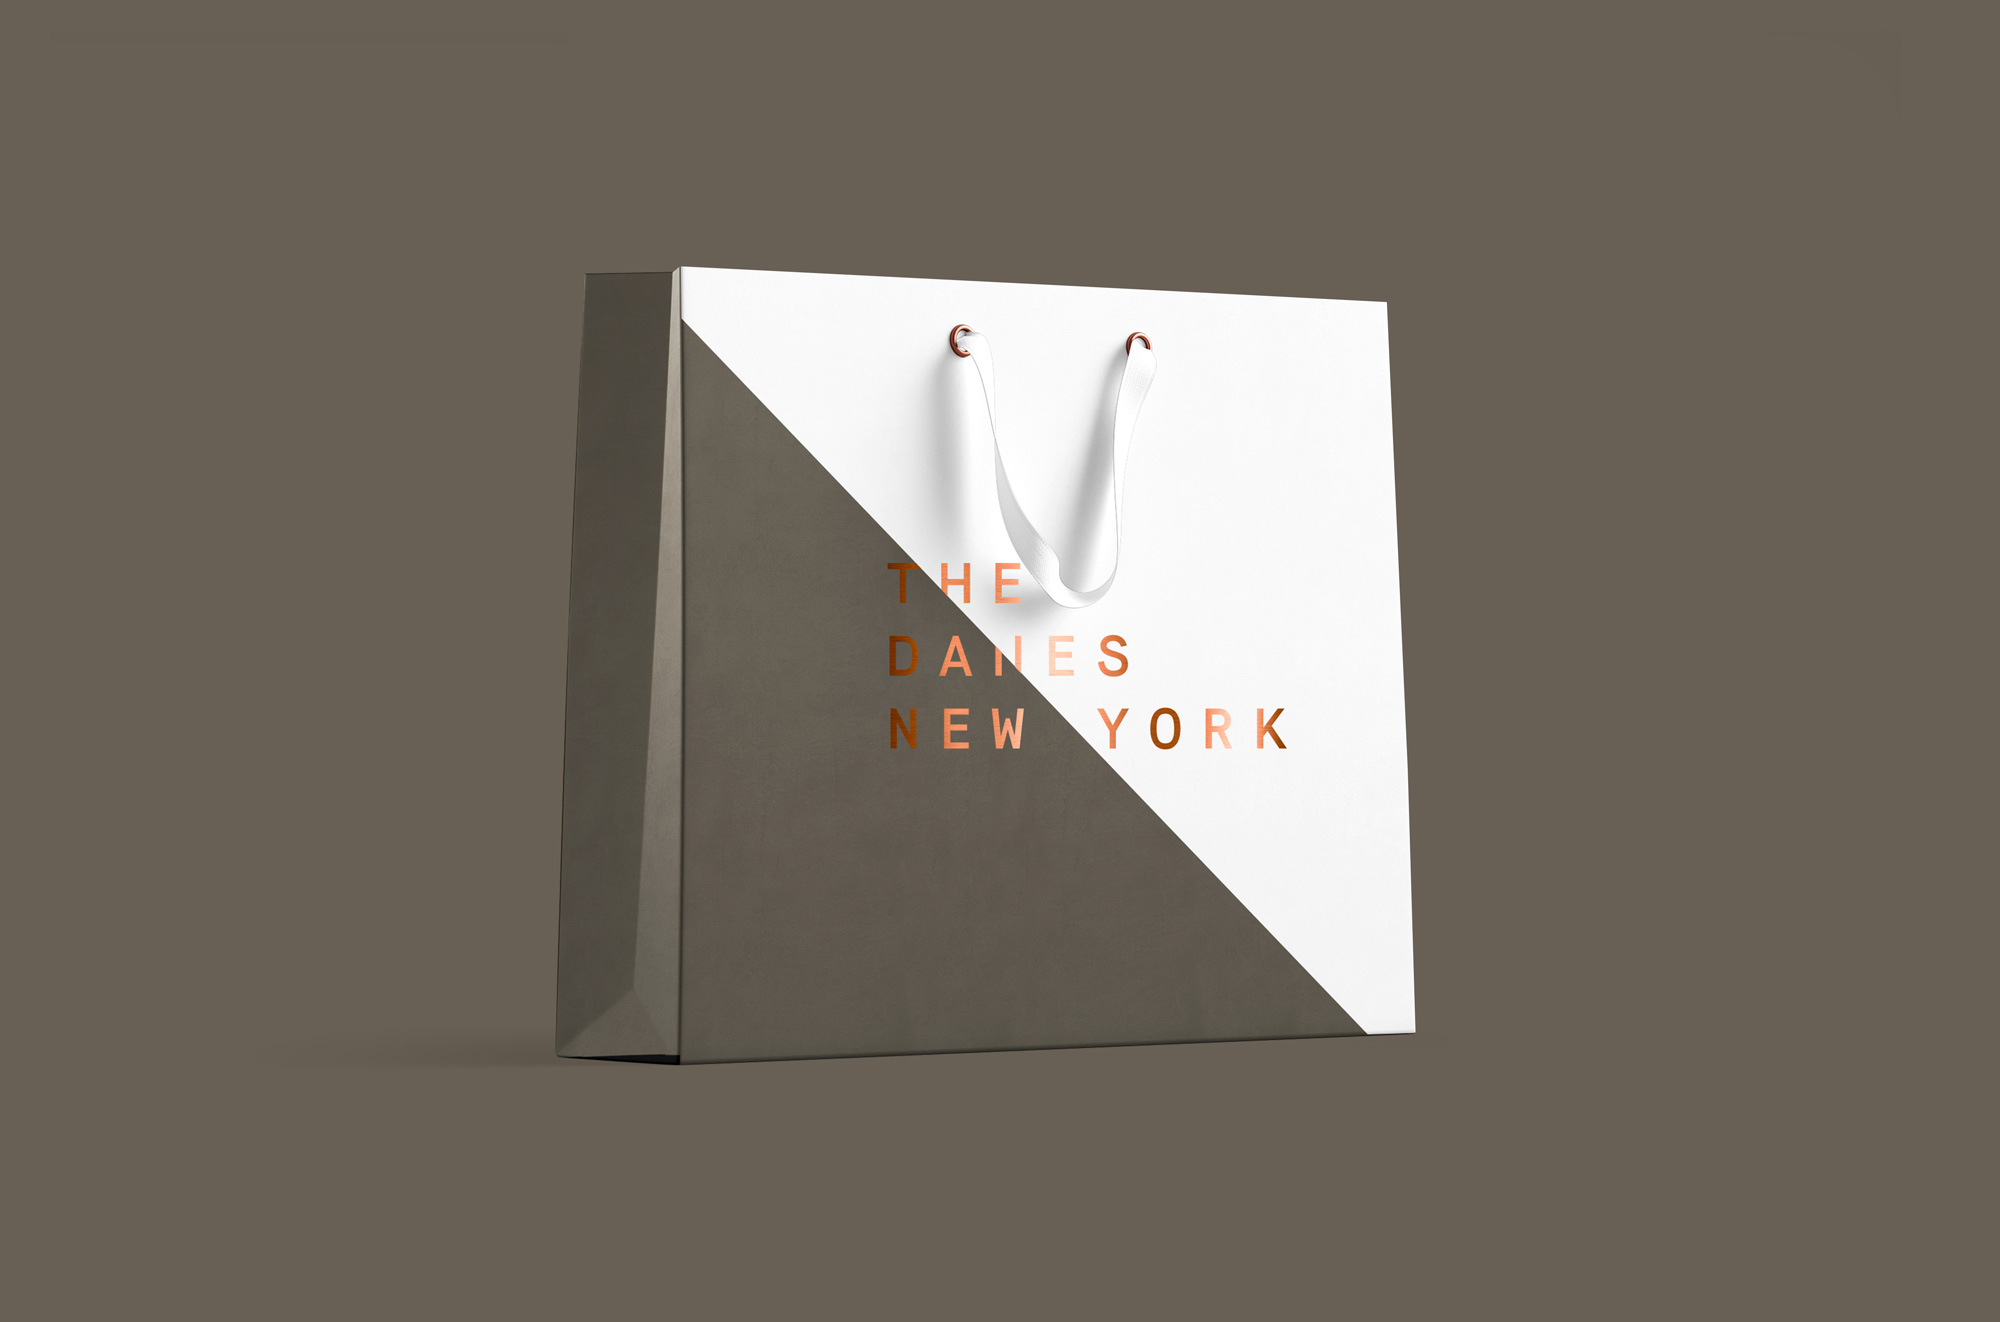 New Logo and Identity for The Danes New York by Young & Laramore